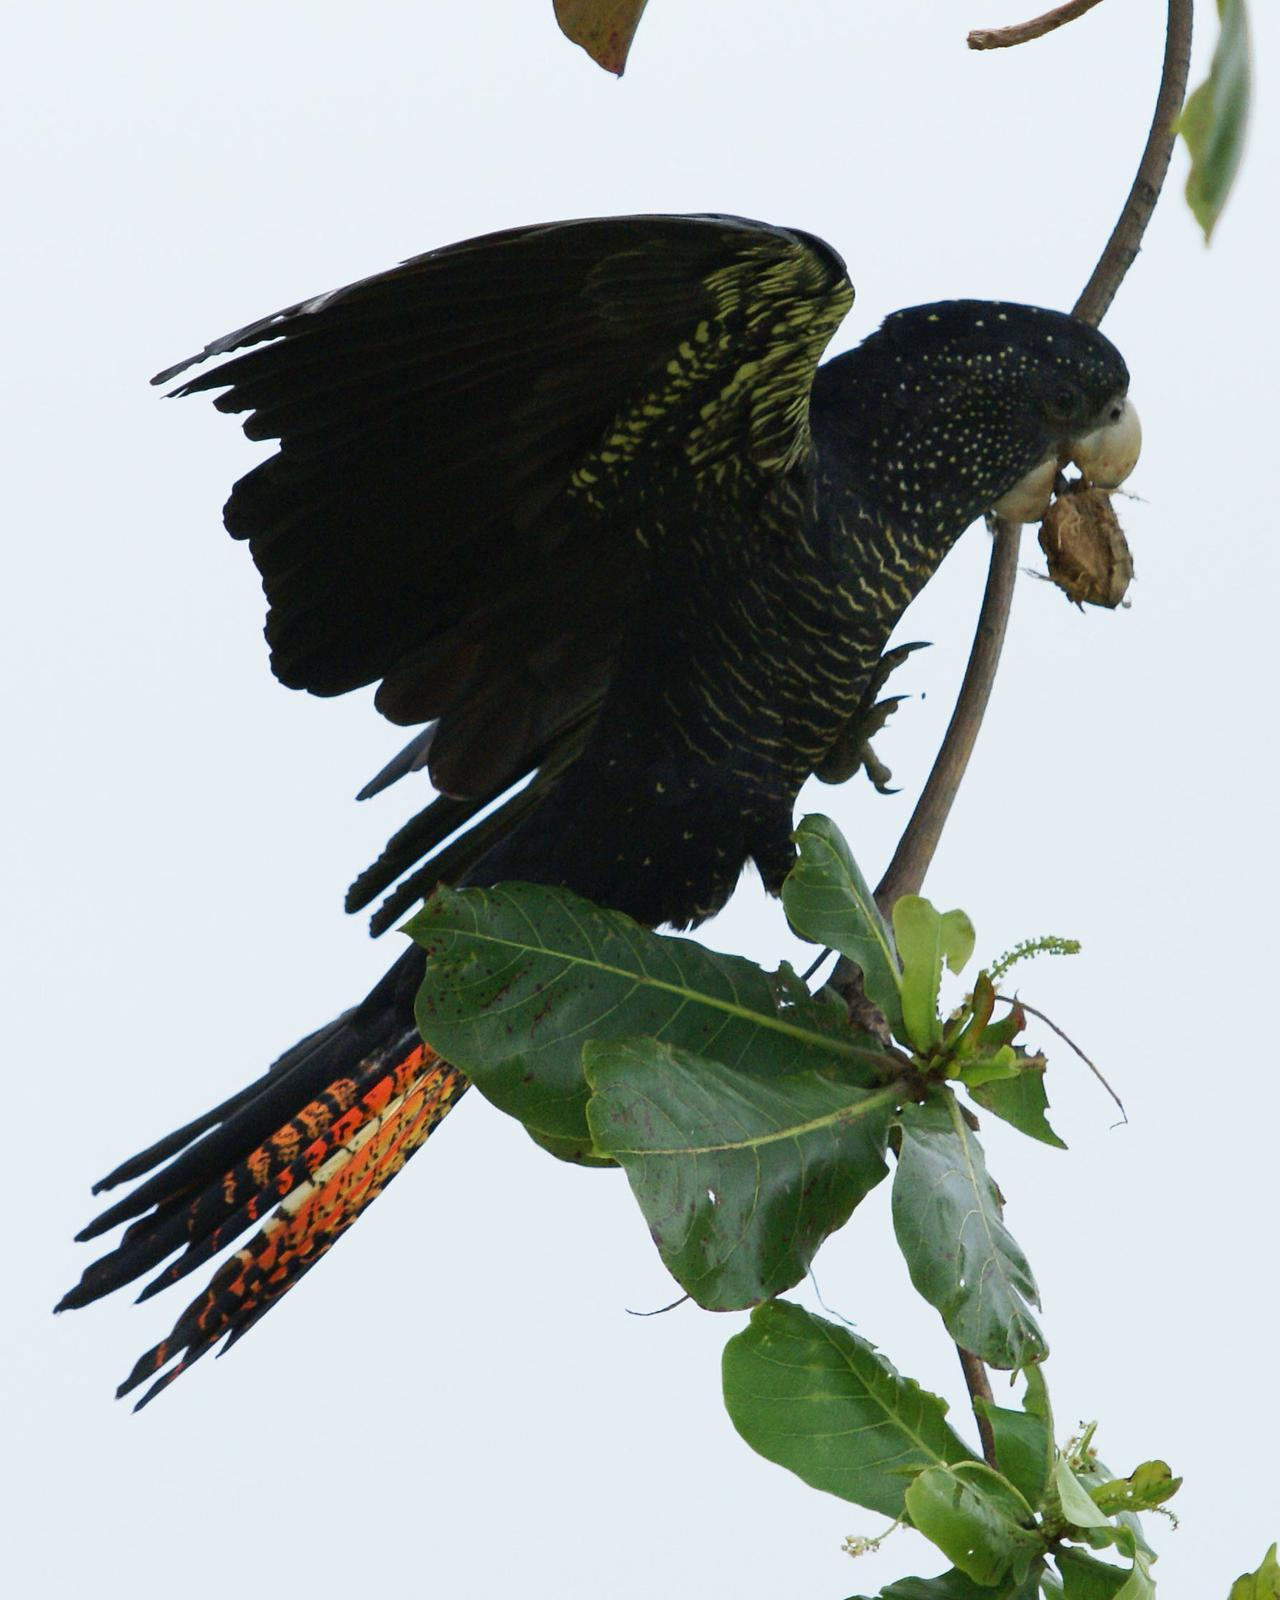 Red-tailed Black-Cockatoo Photo by Steve Percival